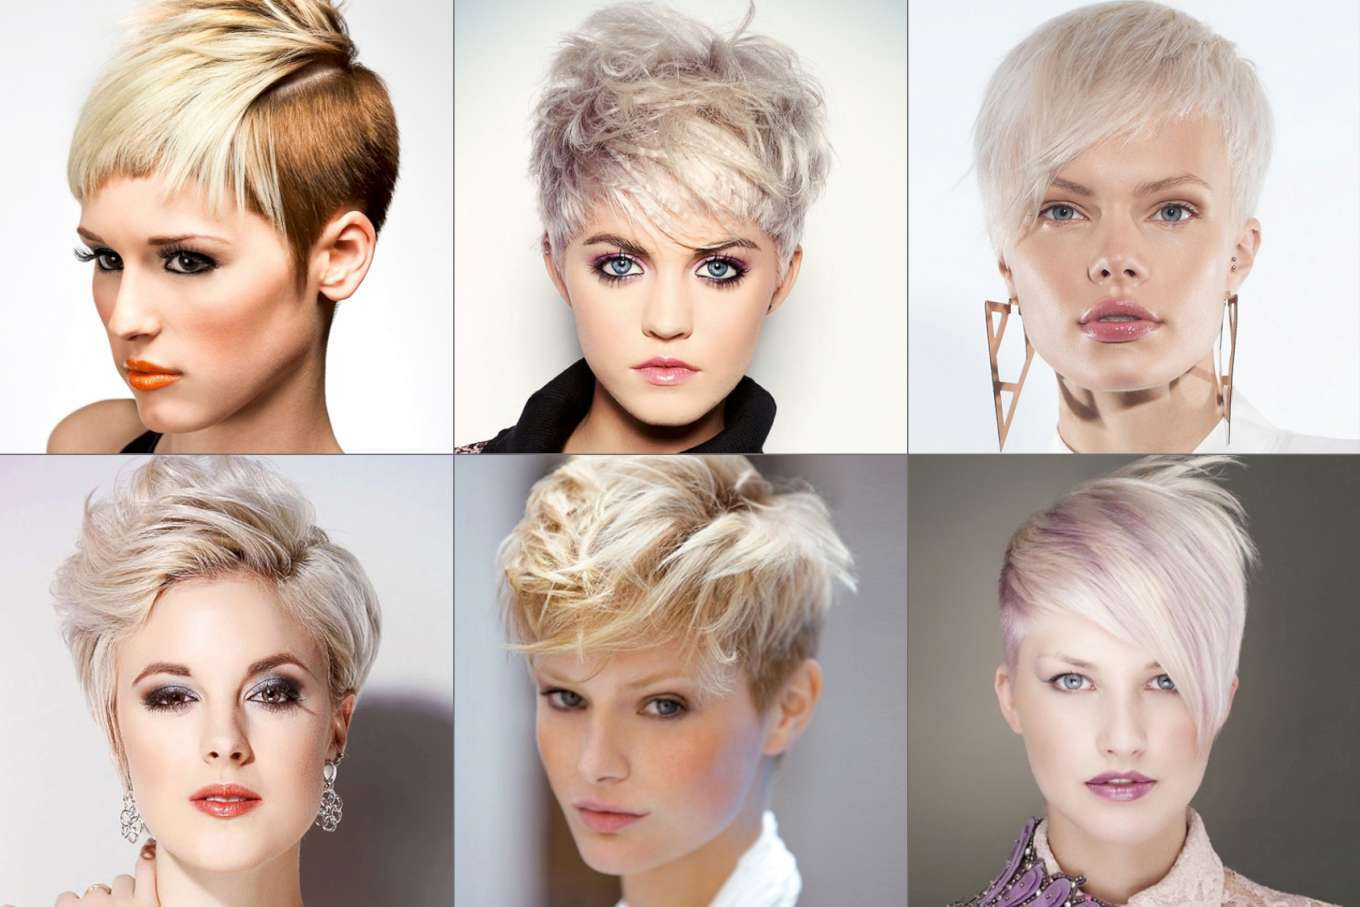 Popular Haircuts 2016 : Short Hairstyles 2016 Fashion and Women